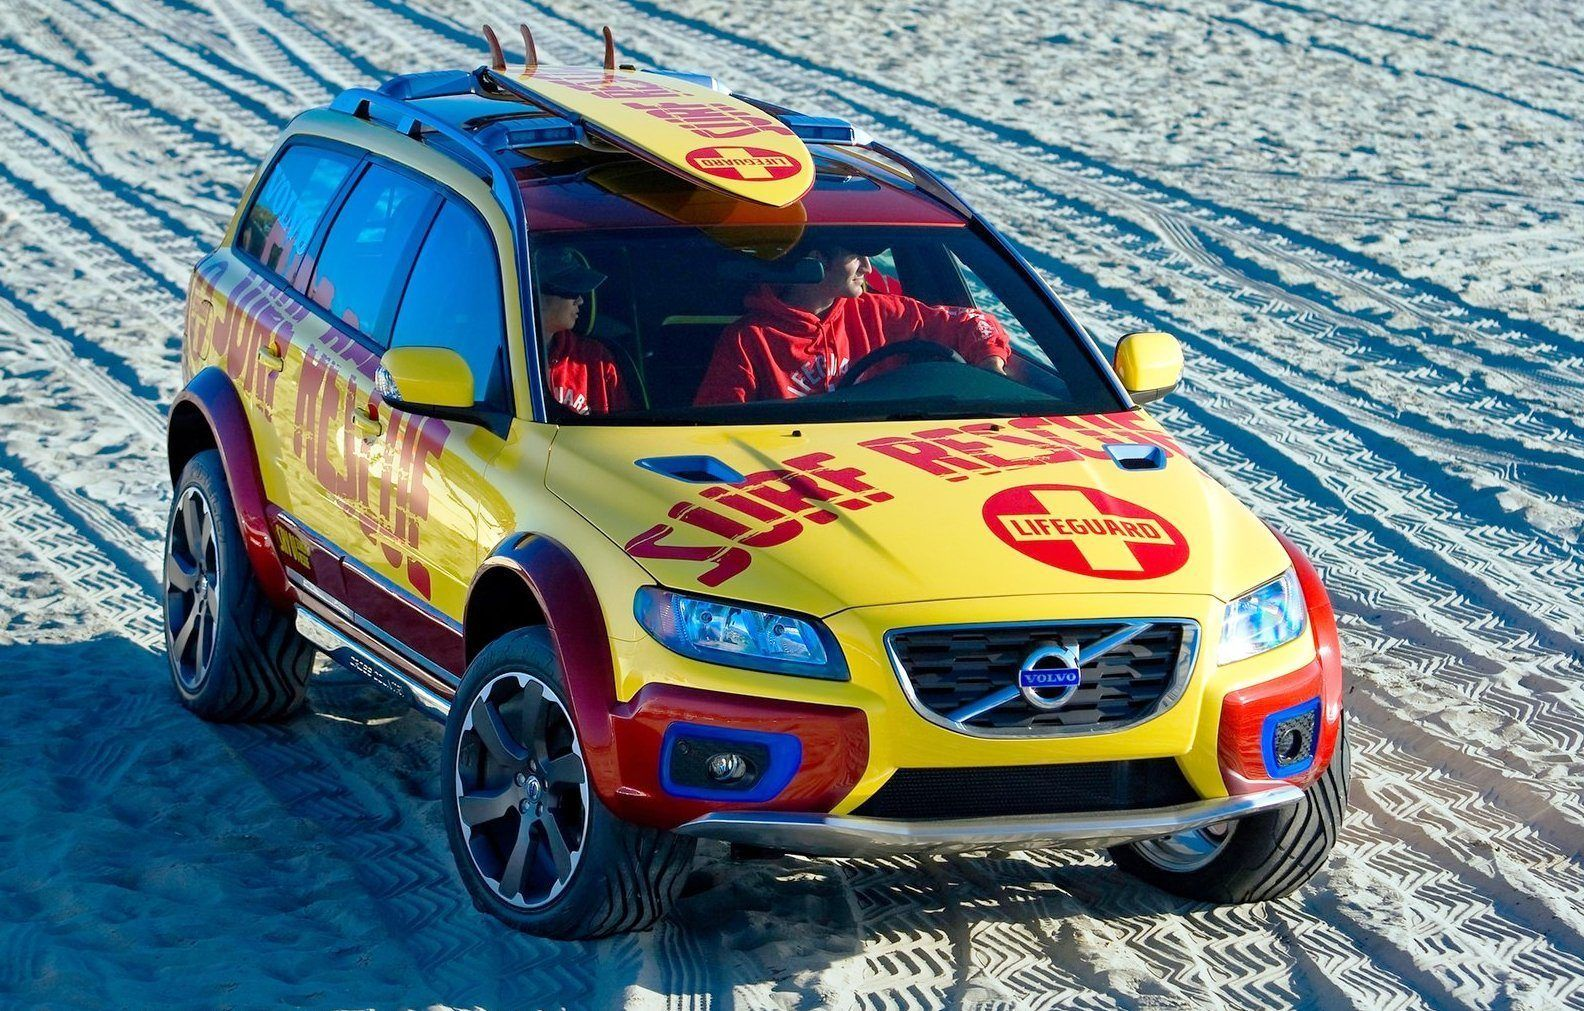 Concept flashback 2005 volvo xc70 all terrain and 2007 xc70 surf rescue are california dreams